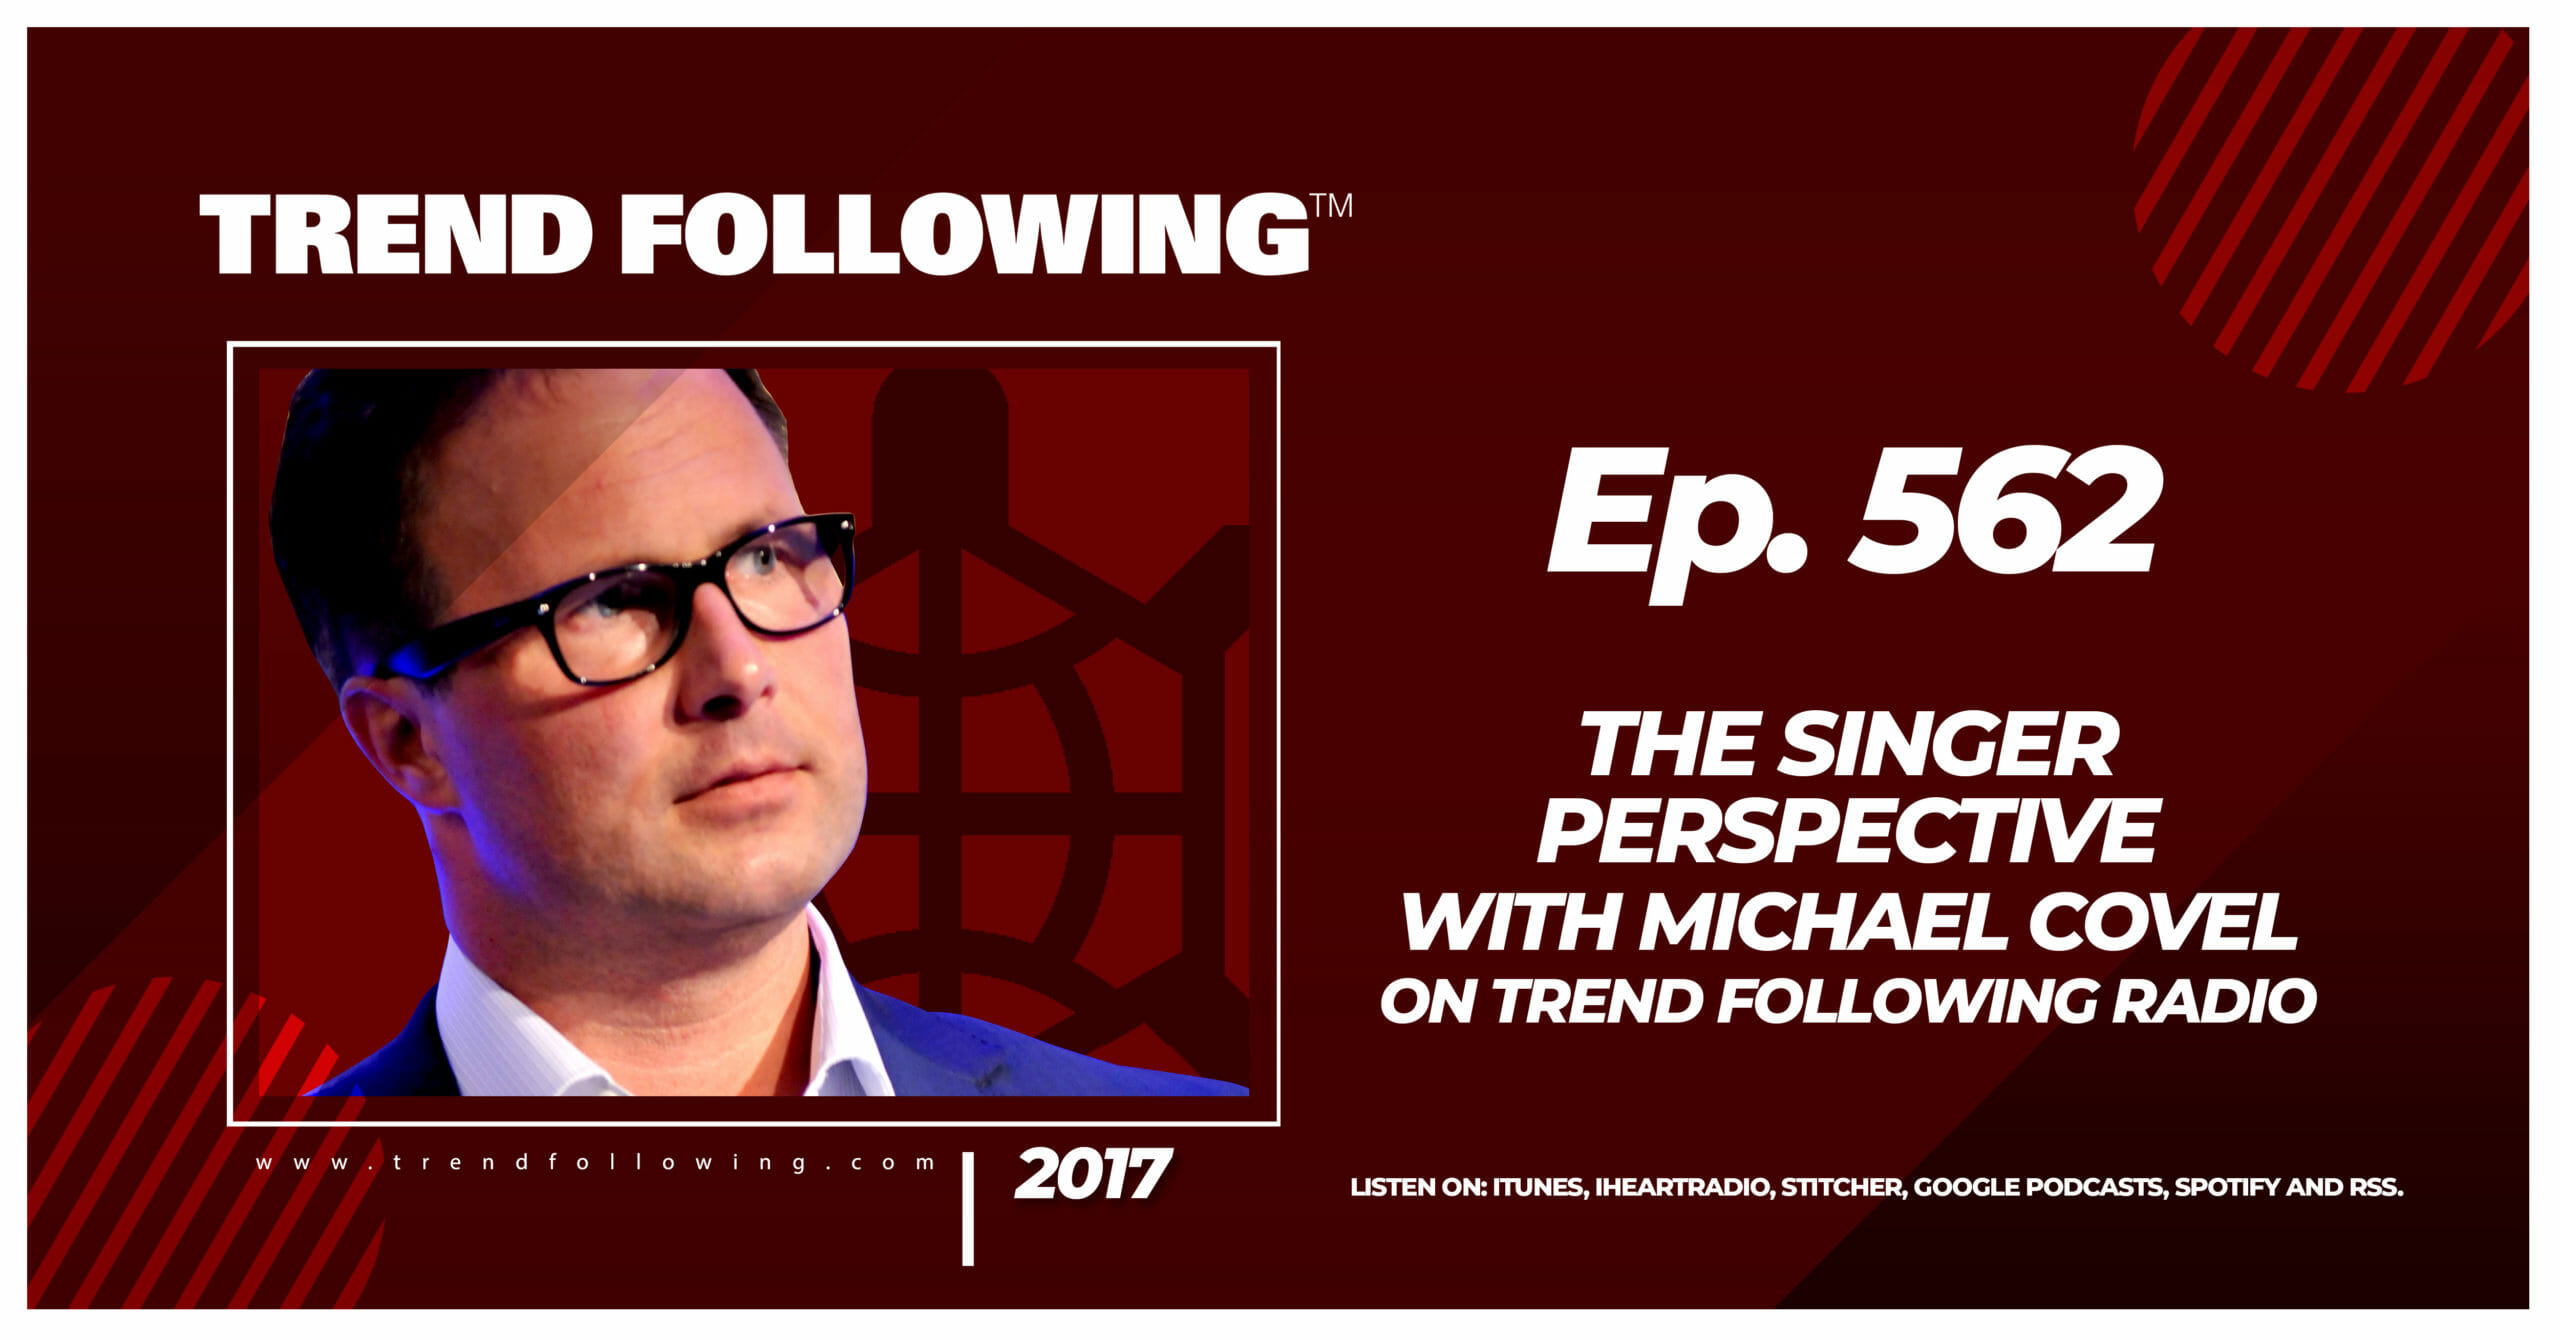 The Singer Perspective with Michael Covel on Trend Following Radio